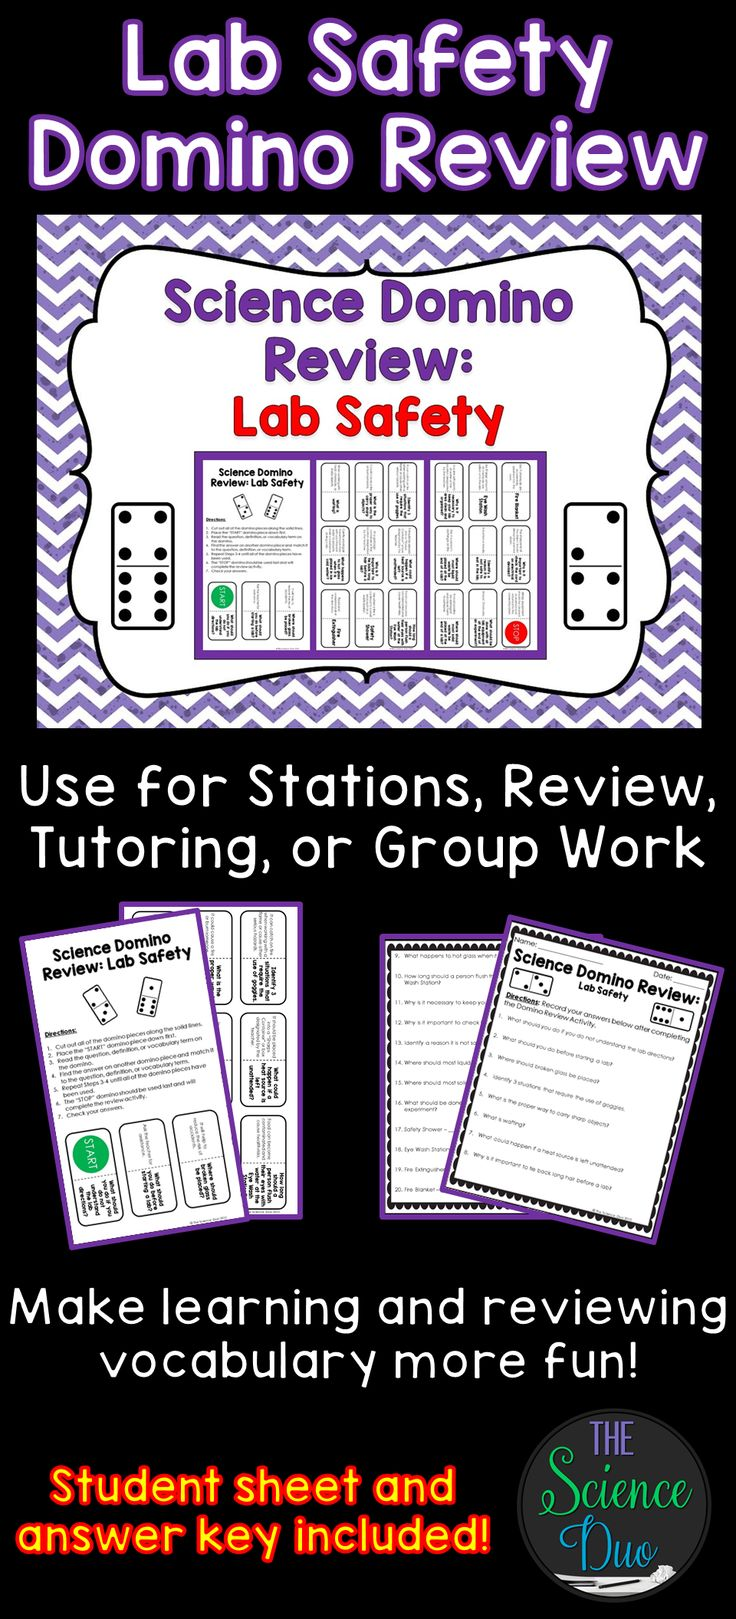 Lab Safety Science Domino Review Activity. Make learning and reviewing Safety rules and procedures more fun!